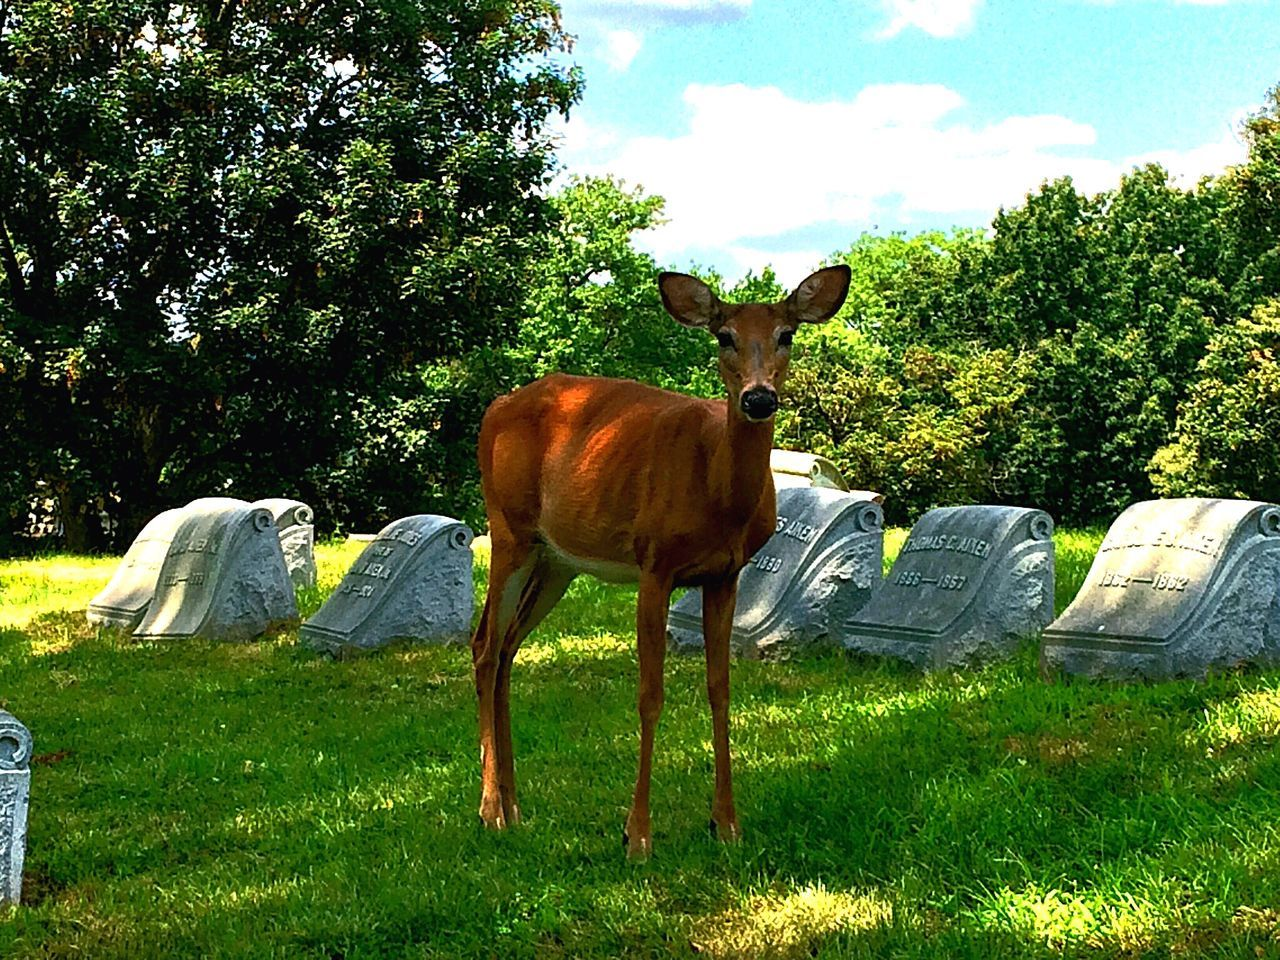 Portrait Of Deer Standing On Grassy Field At Cemetery